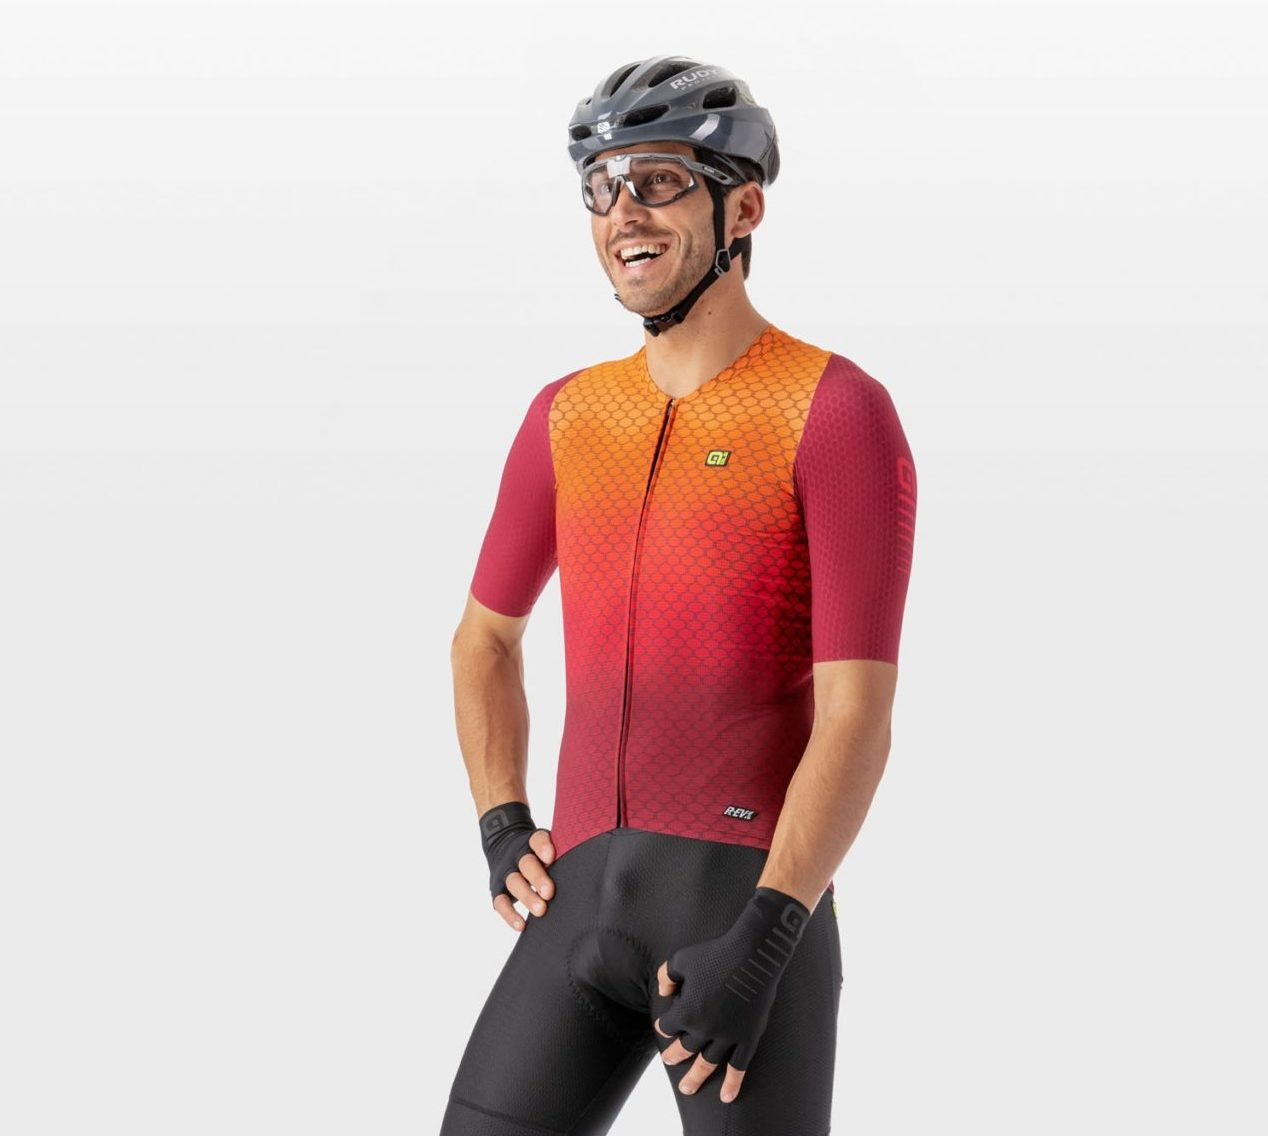 The Alé VELOCITY G+ Jersey; a cool choice for hot rides